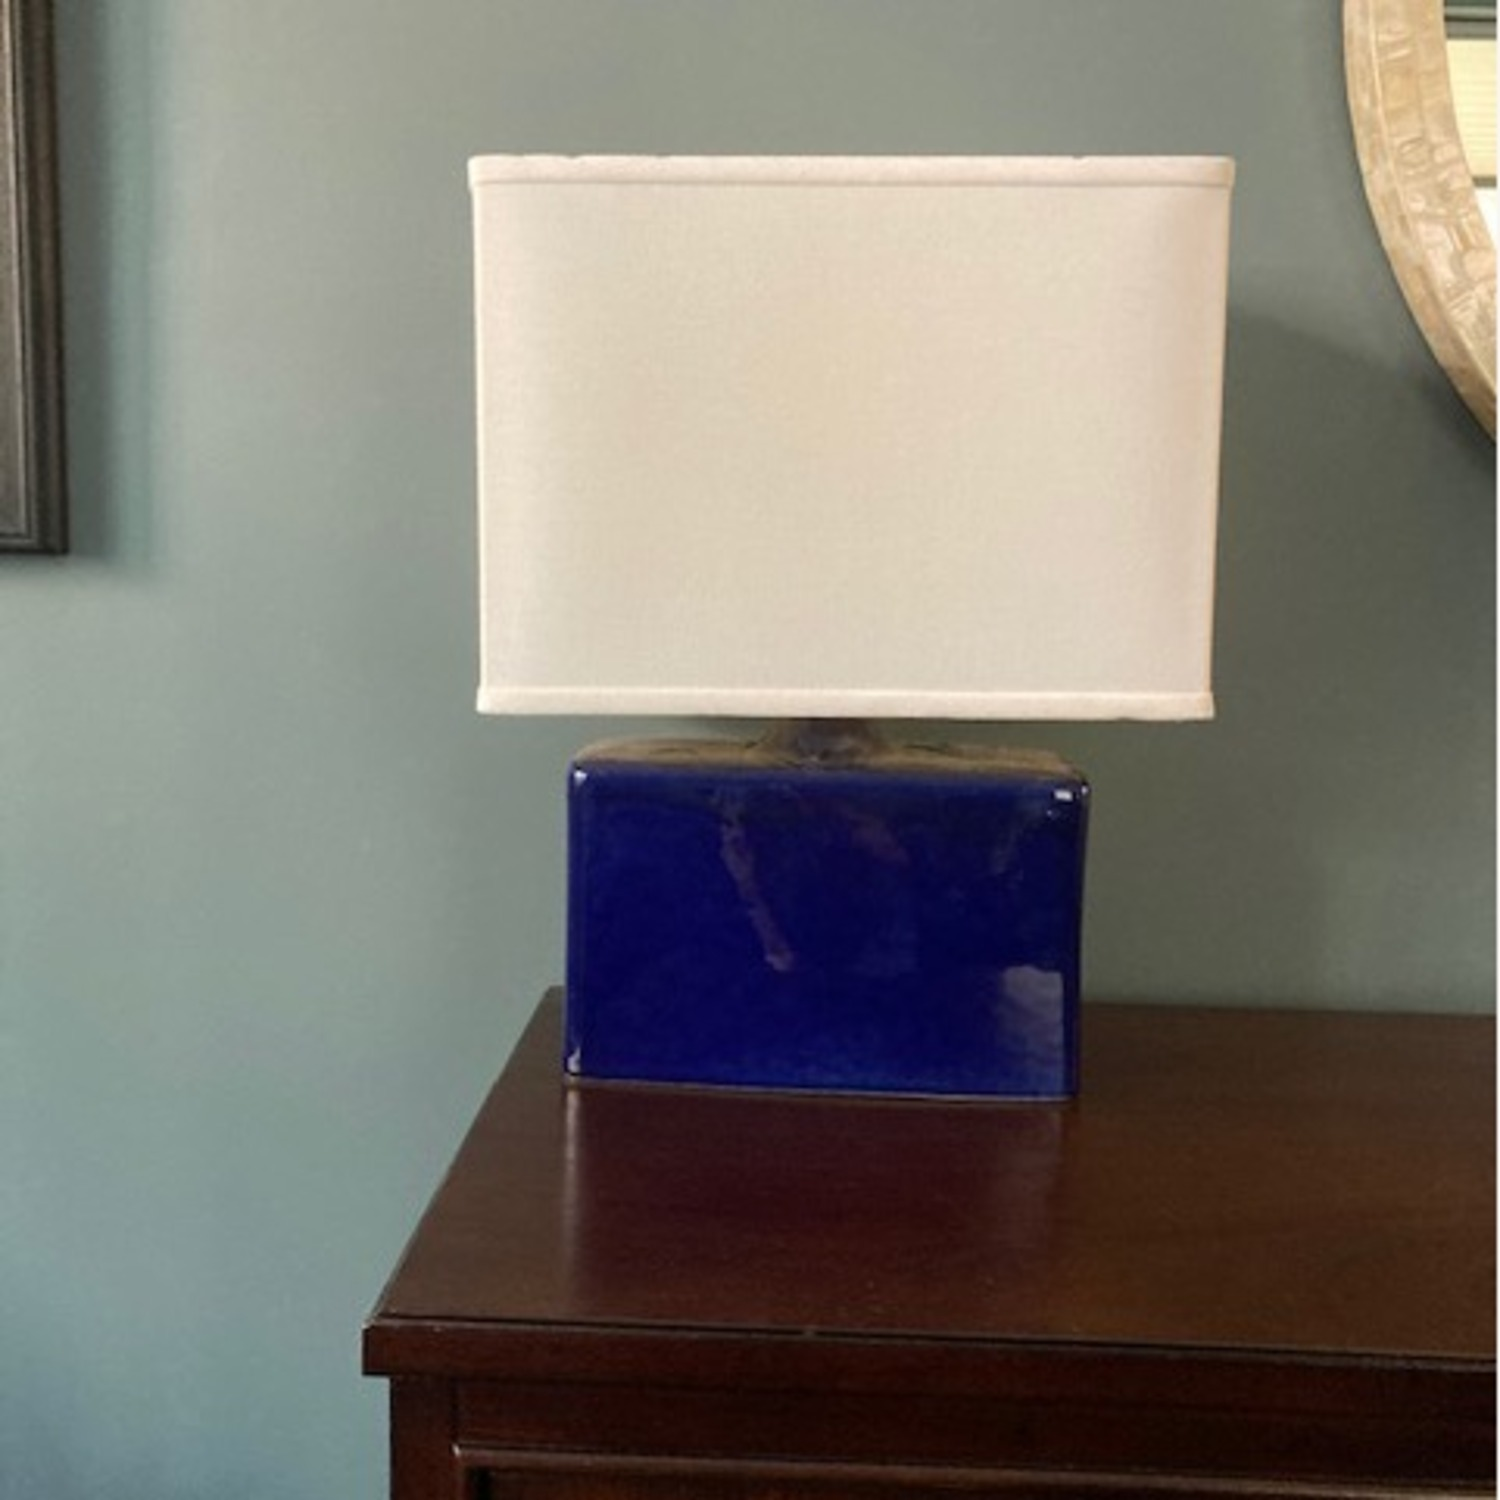 Crate & Barrel Blue Ceramic Table Lamp - image-1